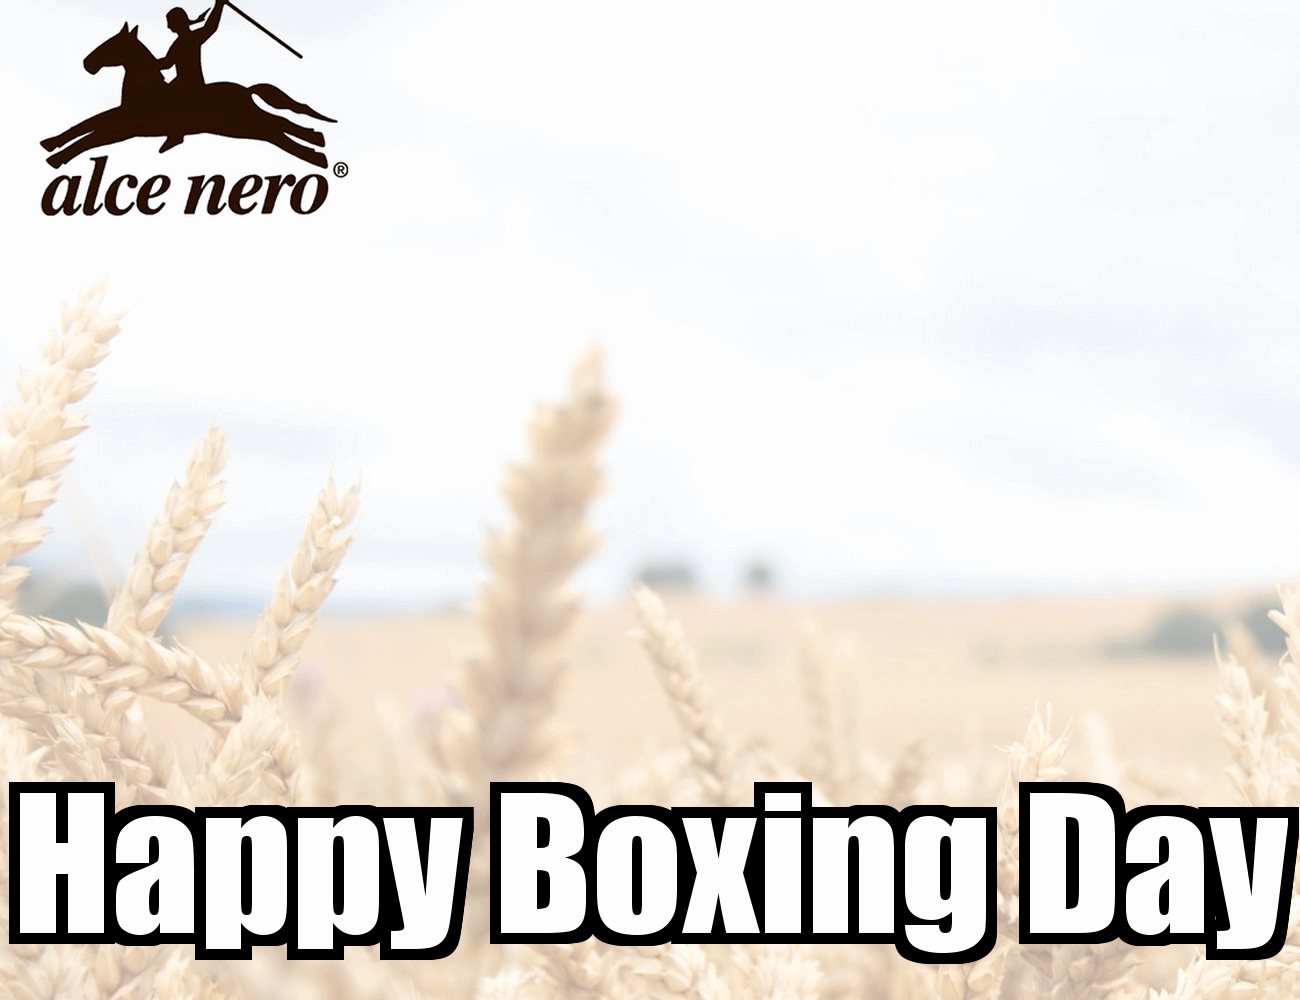 Happy Boxing Day Greetings Image